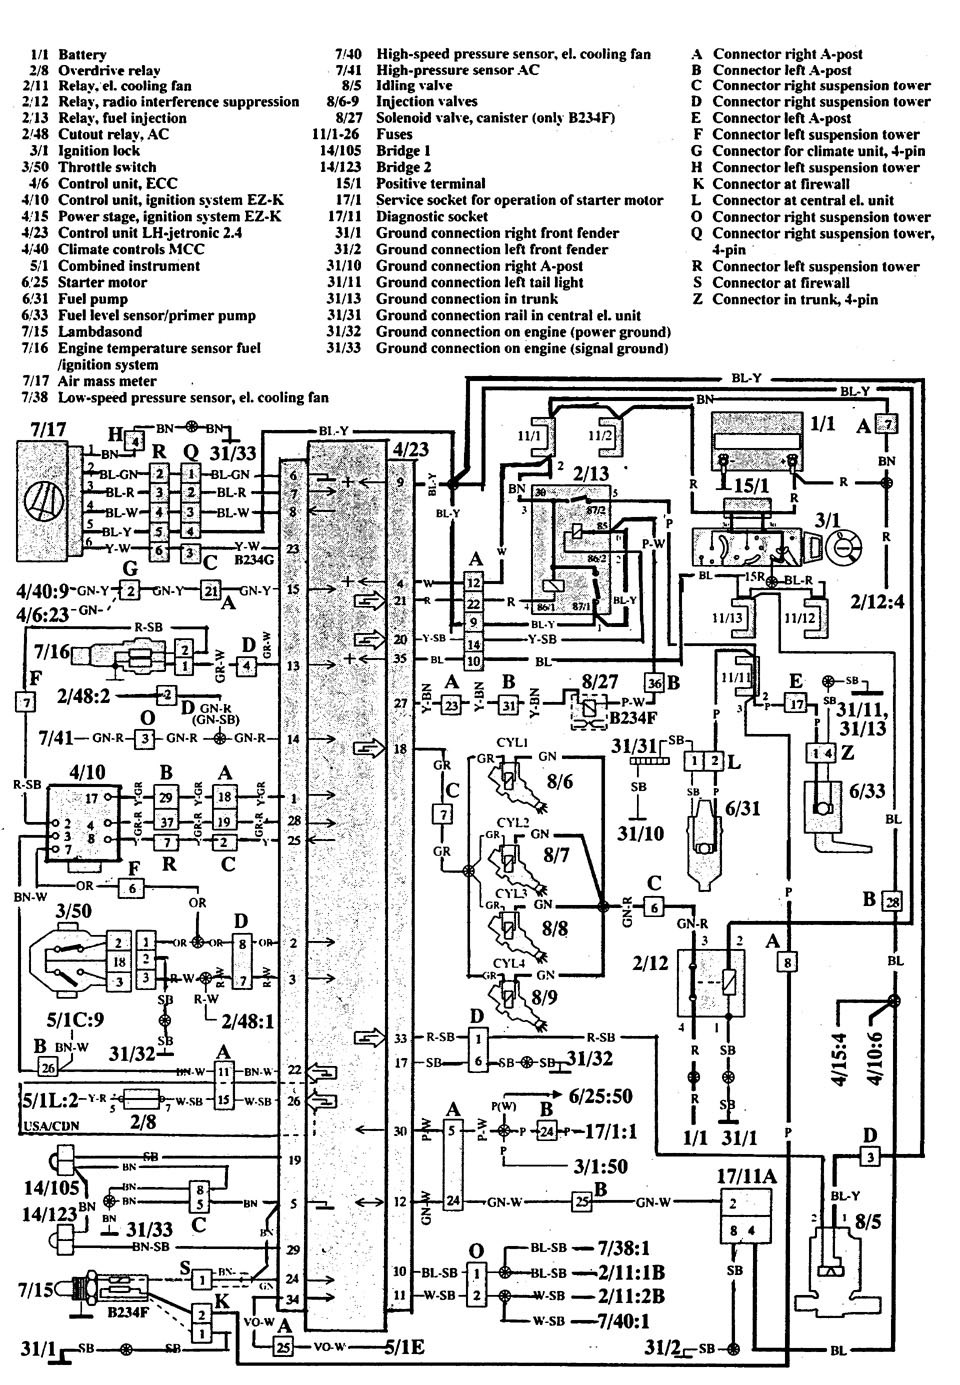 volvo 940 wiring diagram 1995 volvo 940 wiring diagram 1994